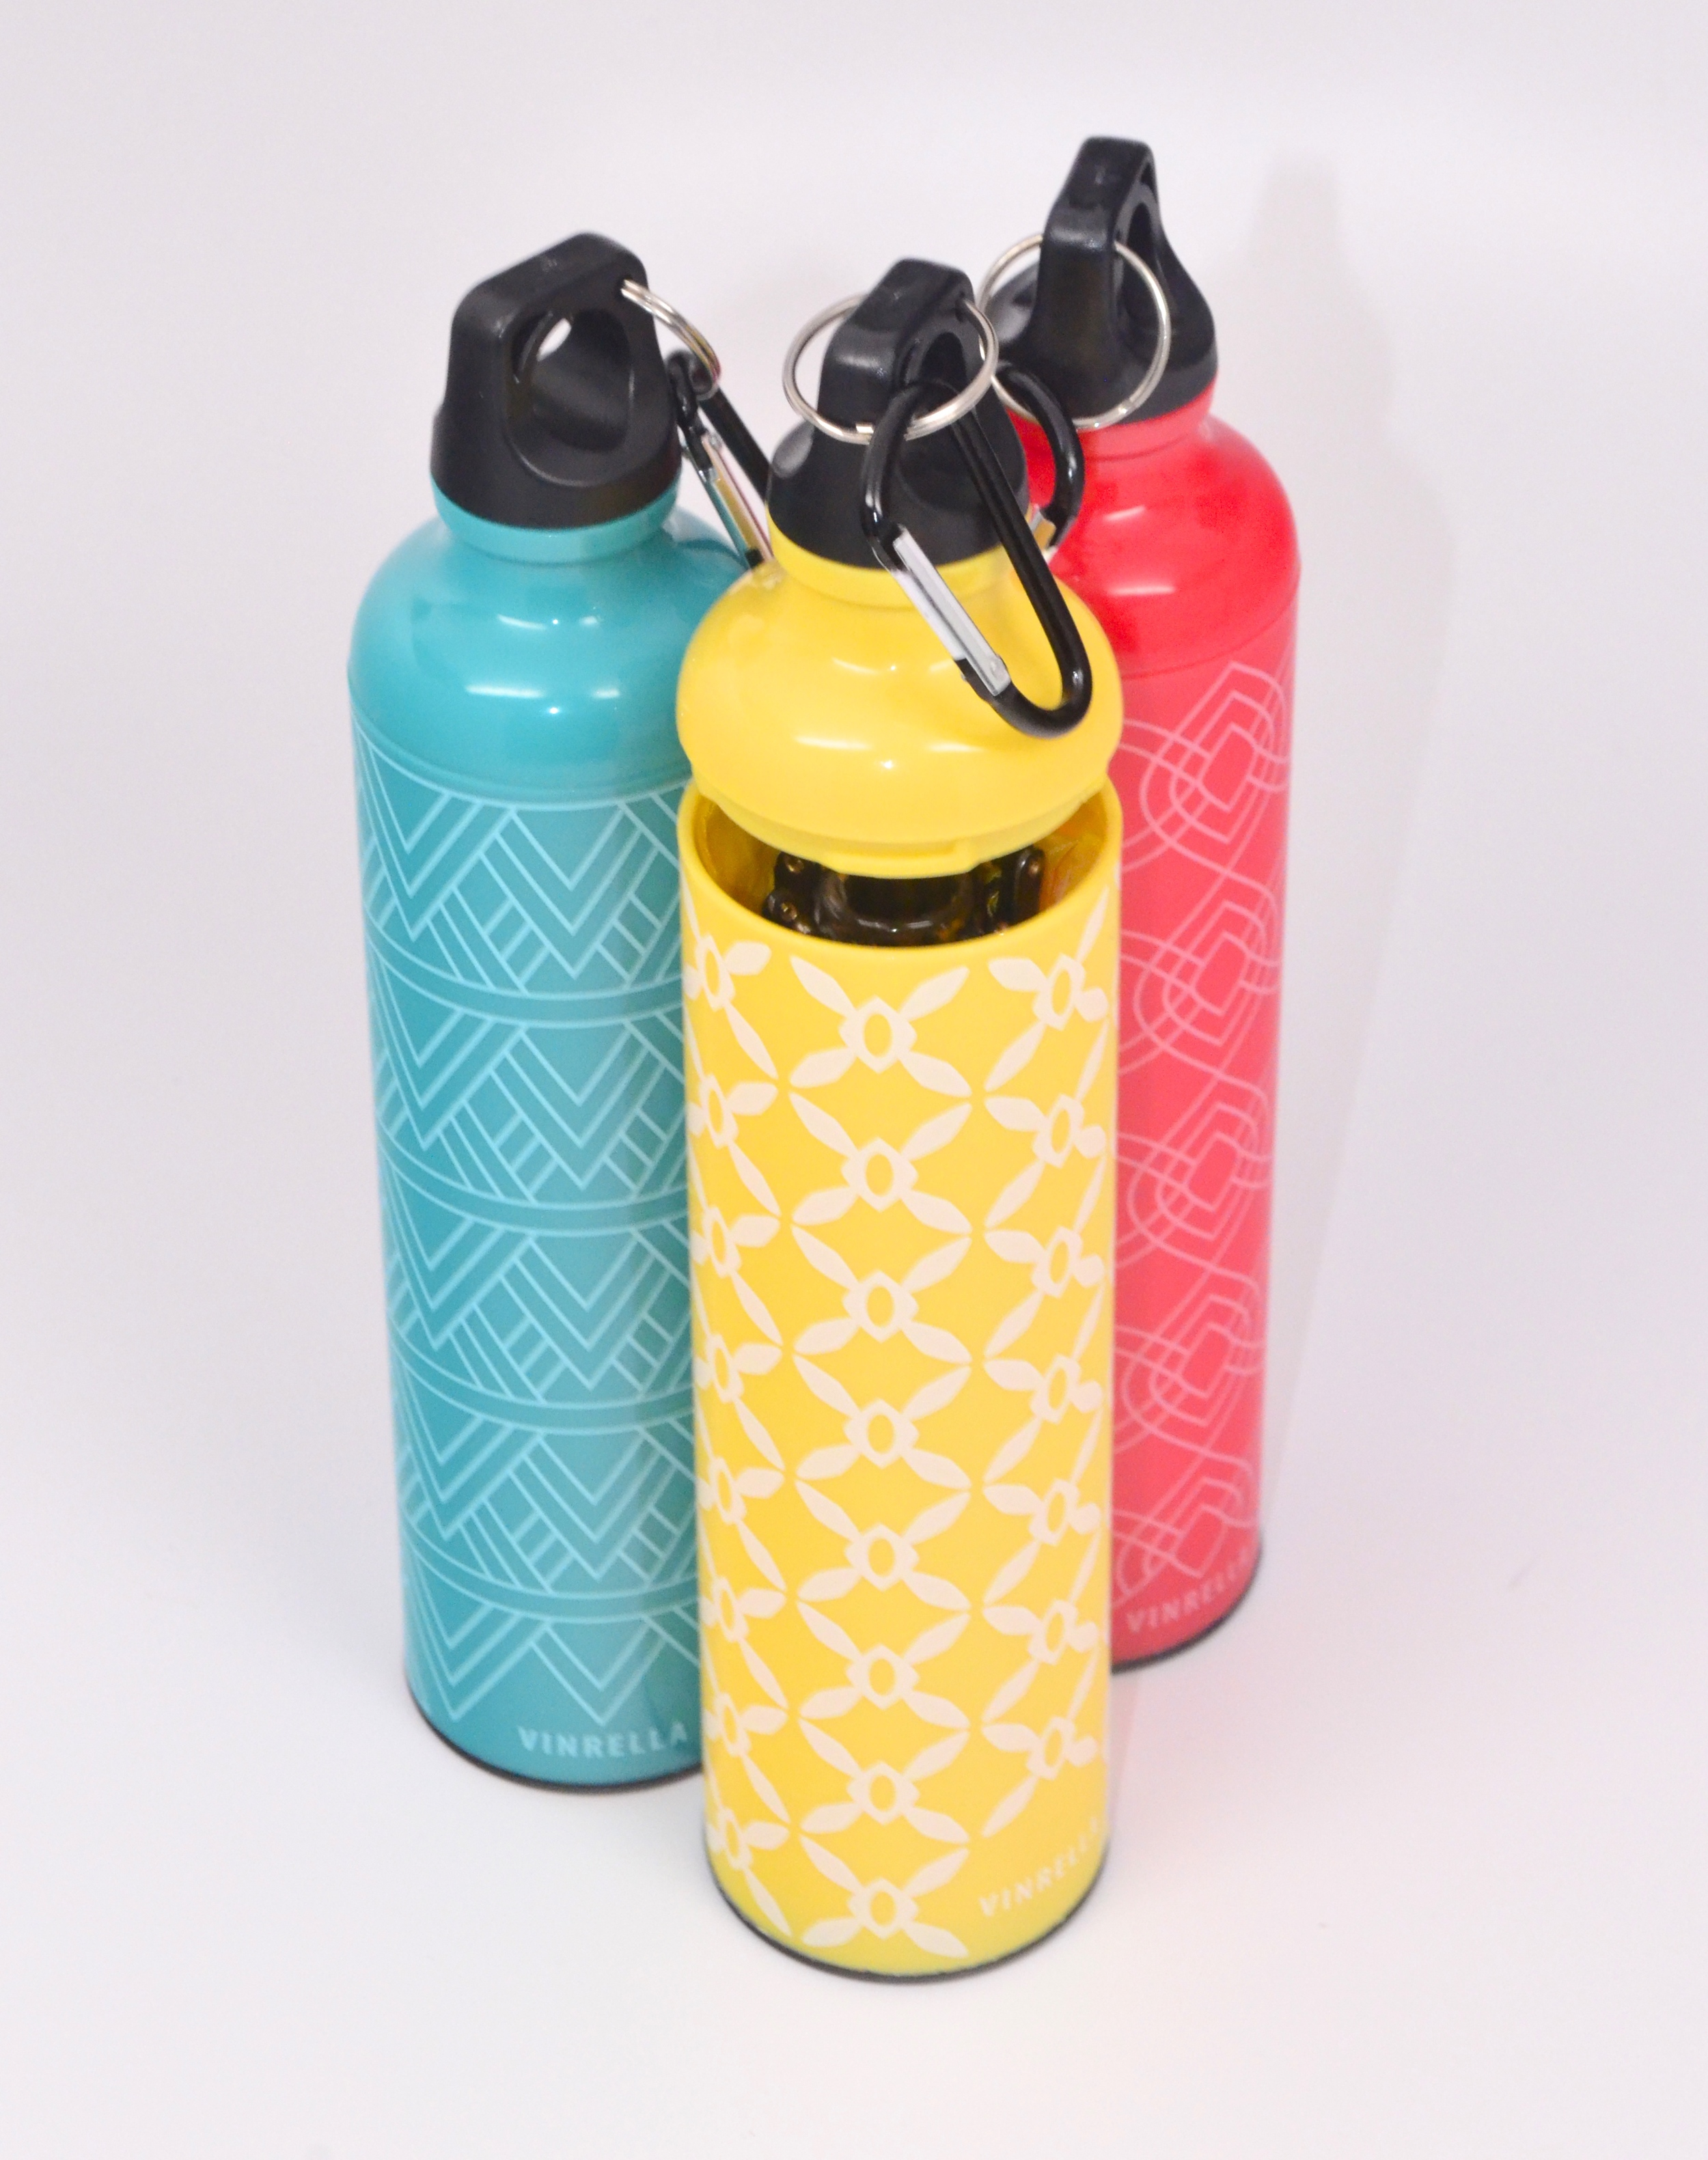 Vinerella cleverly stashes a compact umbrella in a plastic hardcase fashioned as a water bottle.